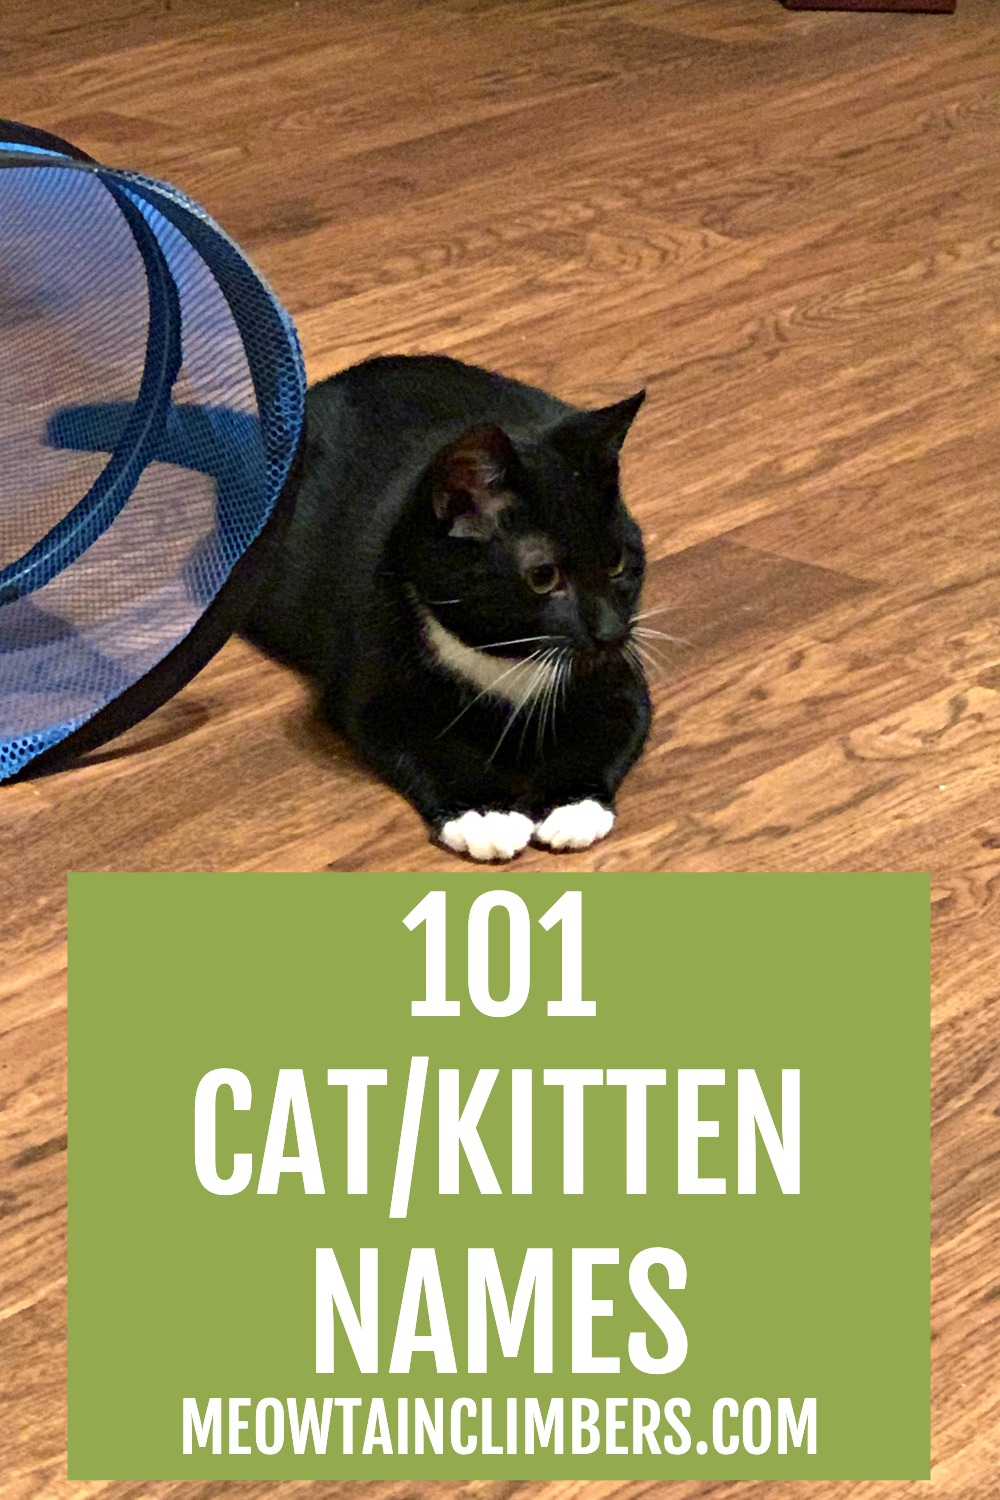 black cat with white collar and paws on a wooden floor. text reads 101 cat/kitten names